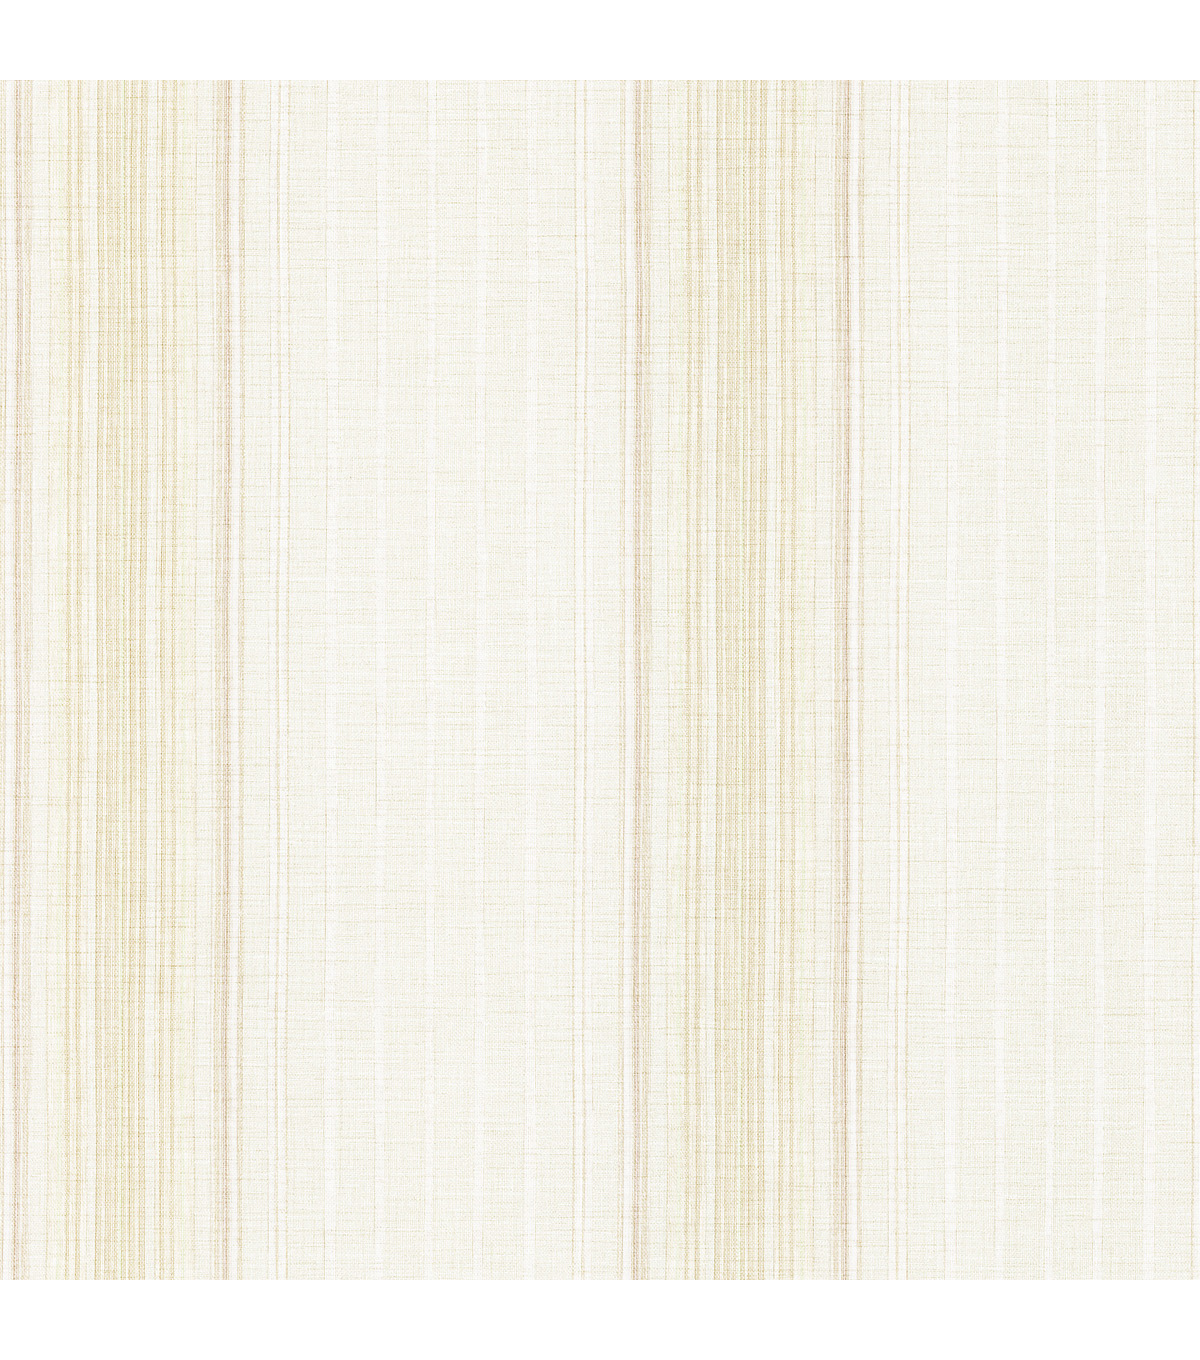 Natuche Taupe Linen Stripe Wallpaper Sample